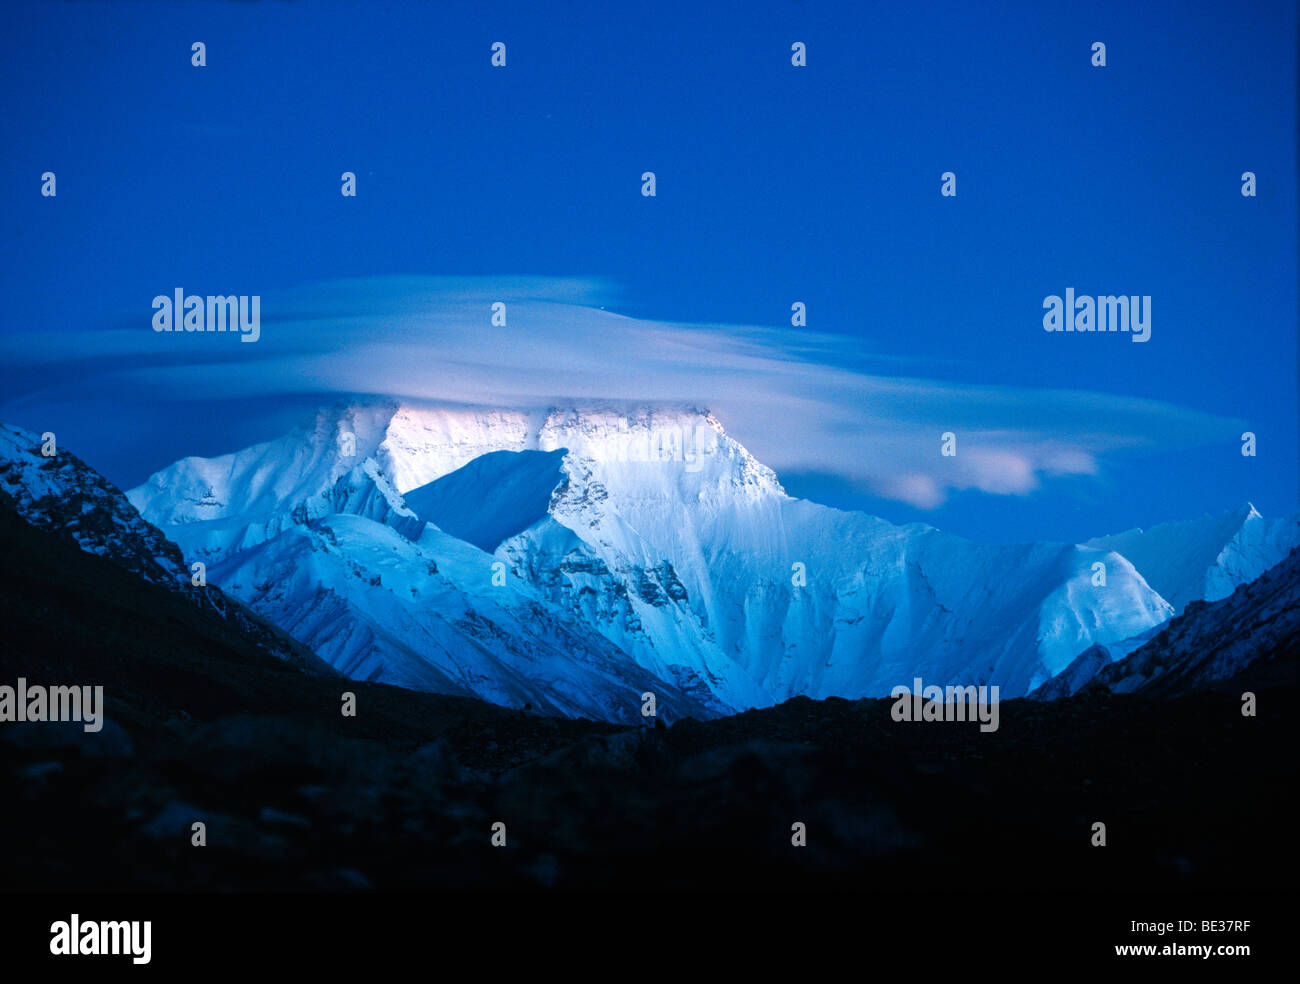 Snow-covered Mount Everest, 8850m, Nepali or Tibetan Sagarmantha Chomolungma, seen from the basecamp from the Tibetan - Stock Image